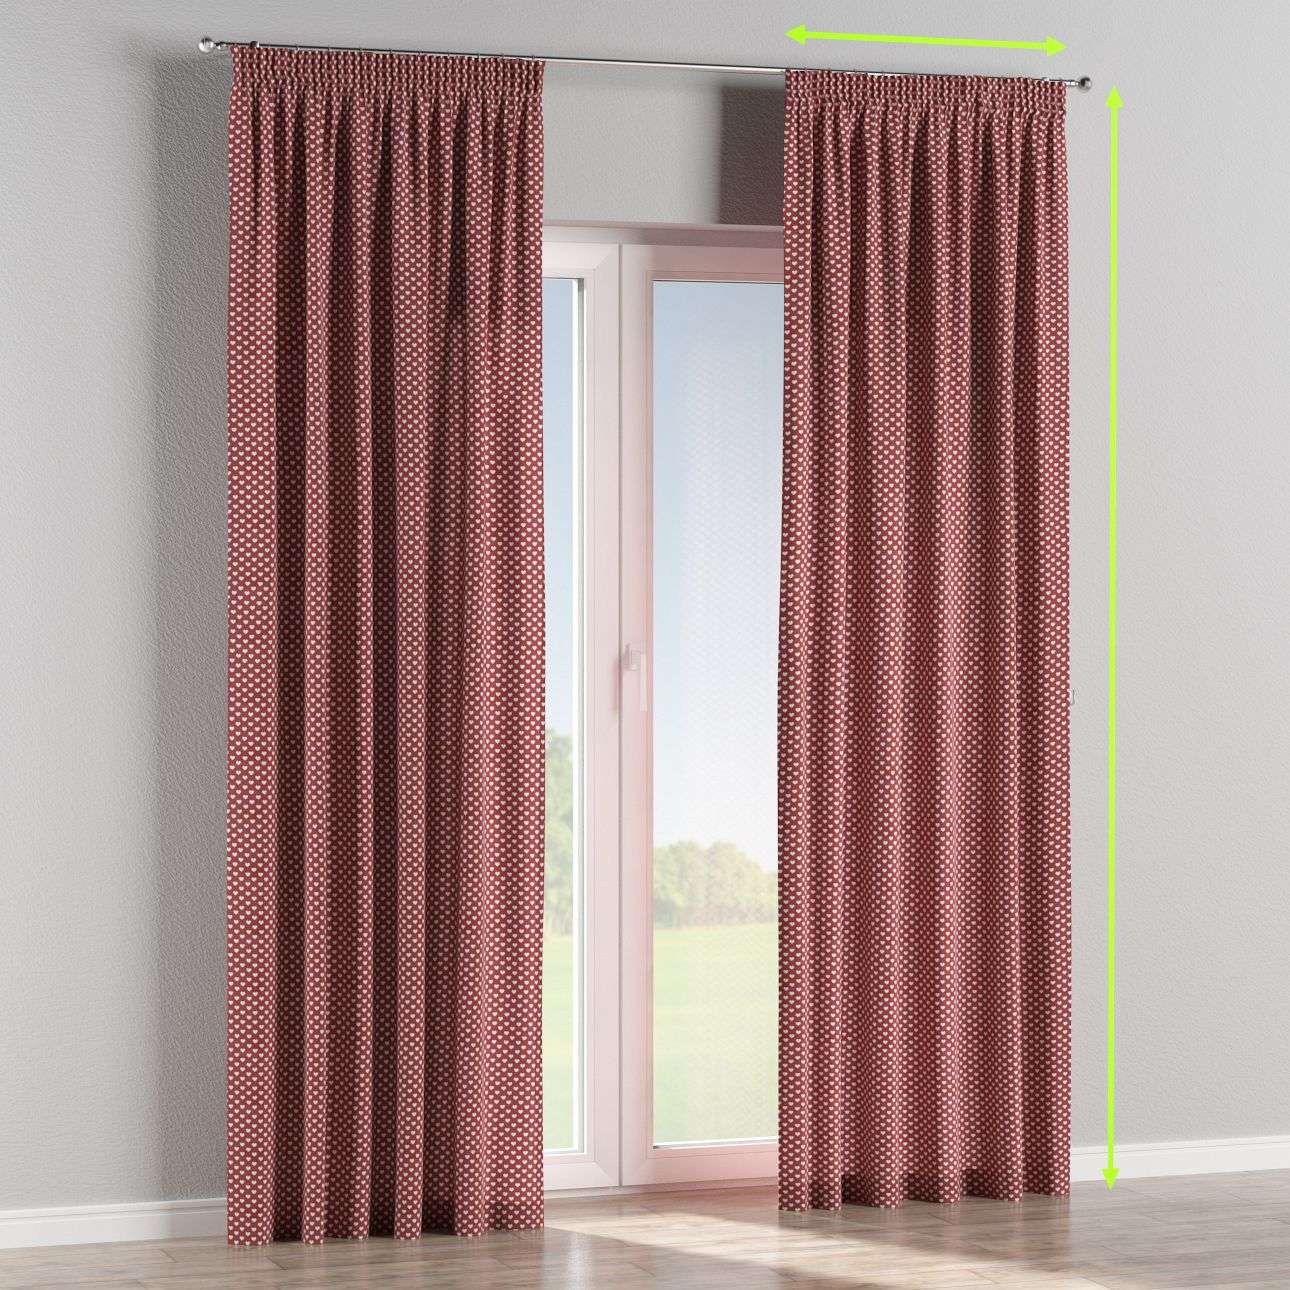 Pencil pleat curtains in collection SALE, fabric: 630-40